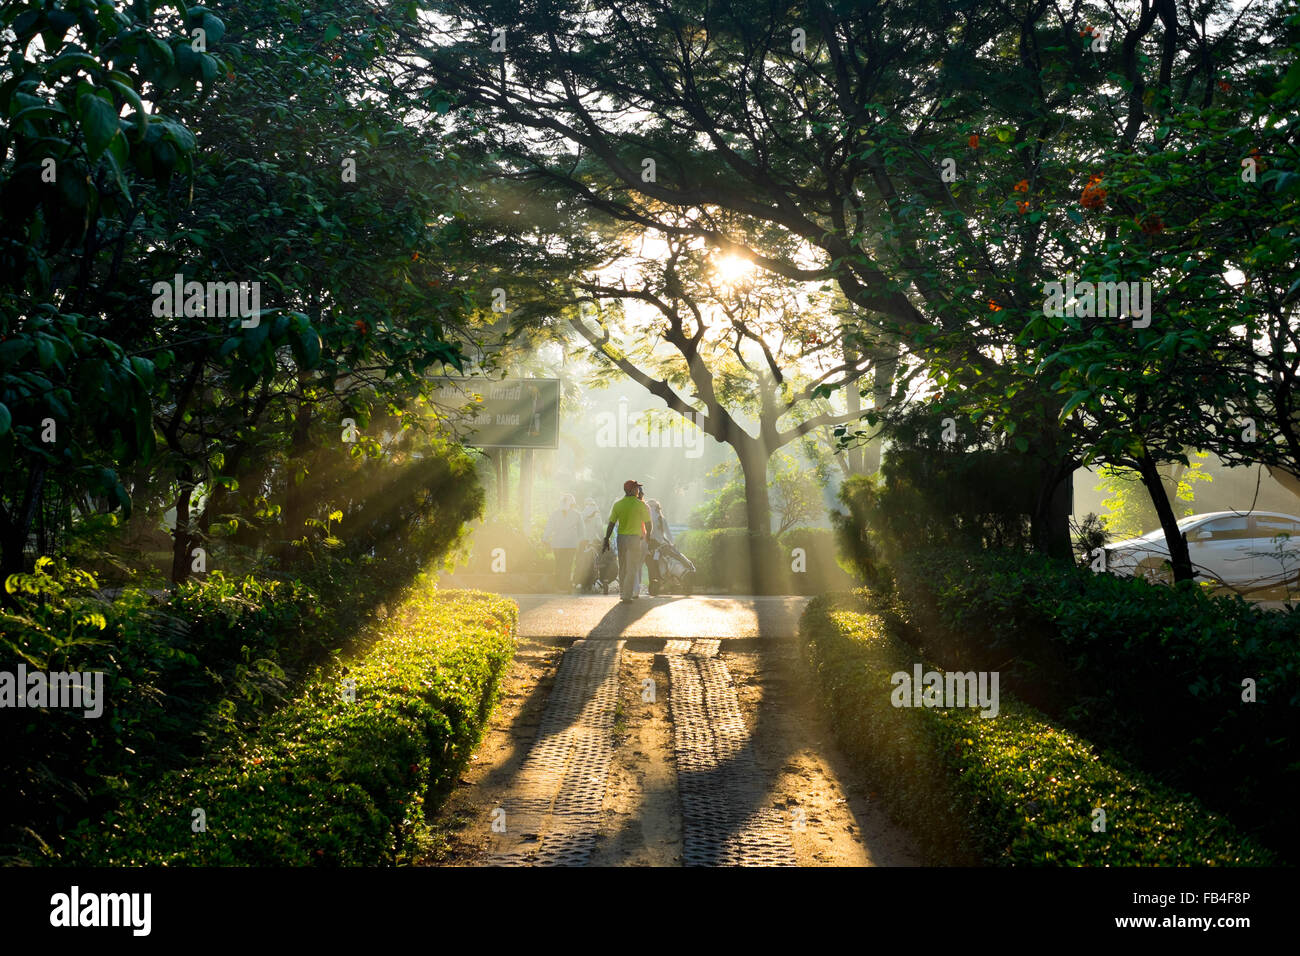 Golfer walking to teeing ground in the morning and the sunlight shining through the tree - Stock Image